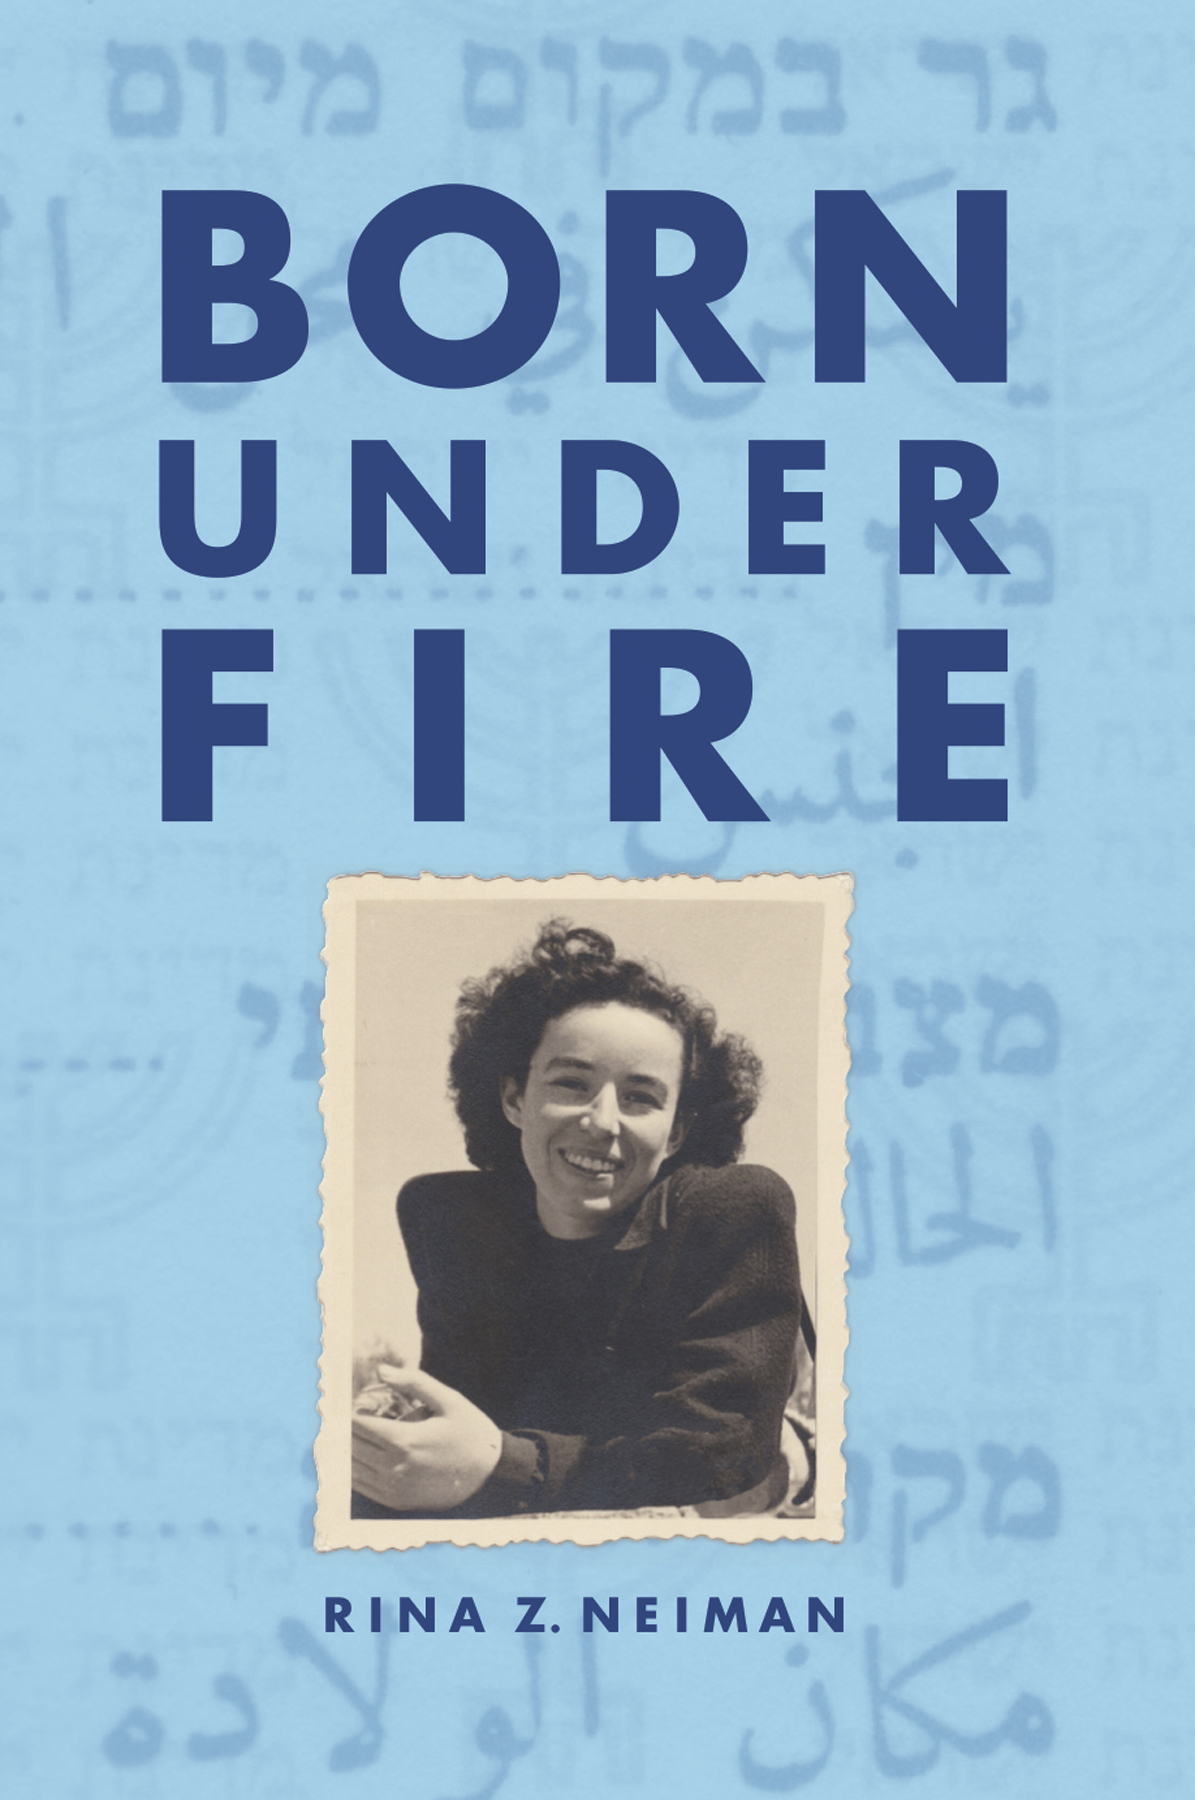 Born Under Fire by Rina Z. Neiman Review